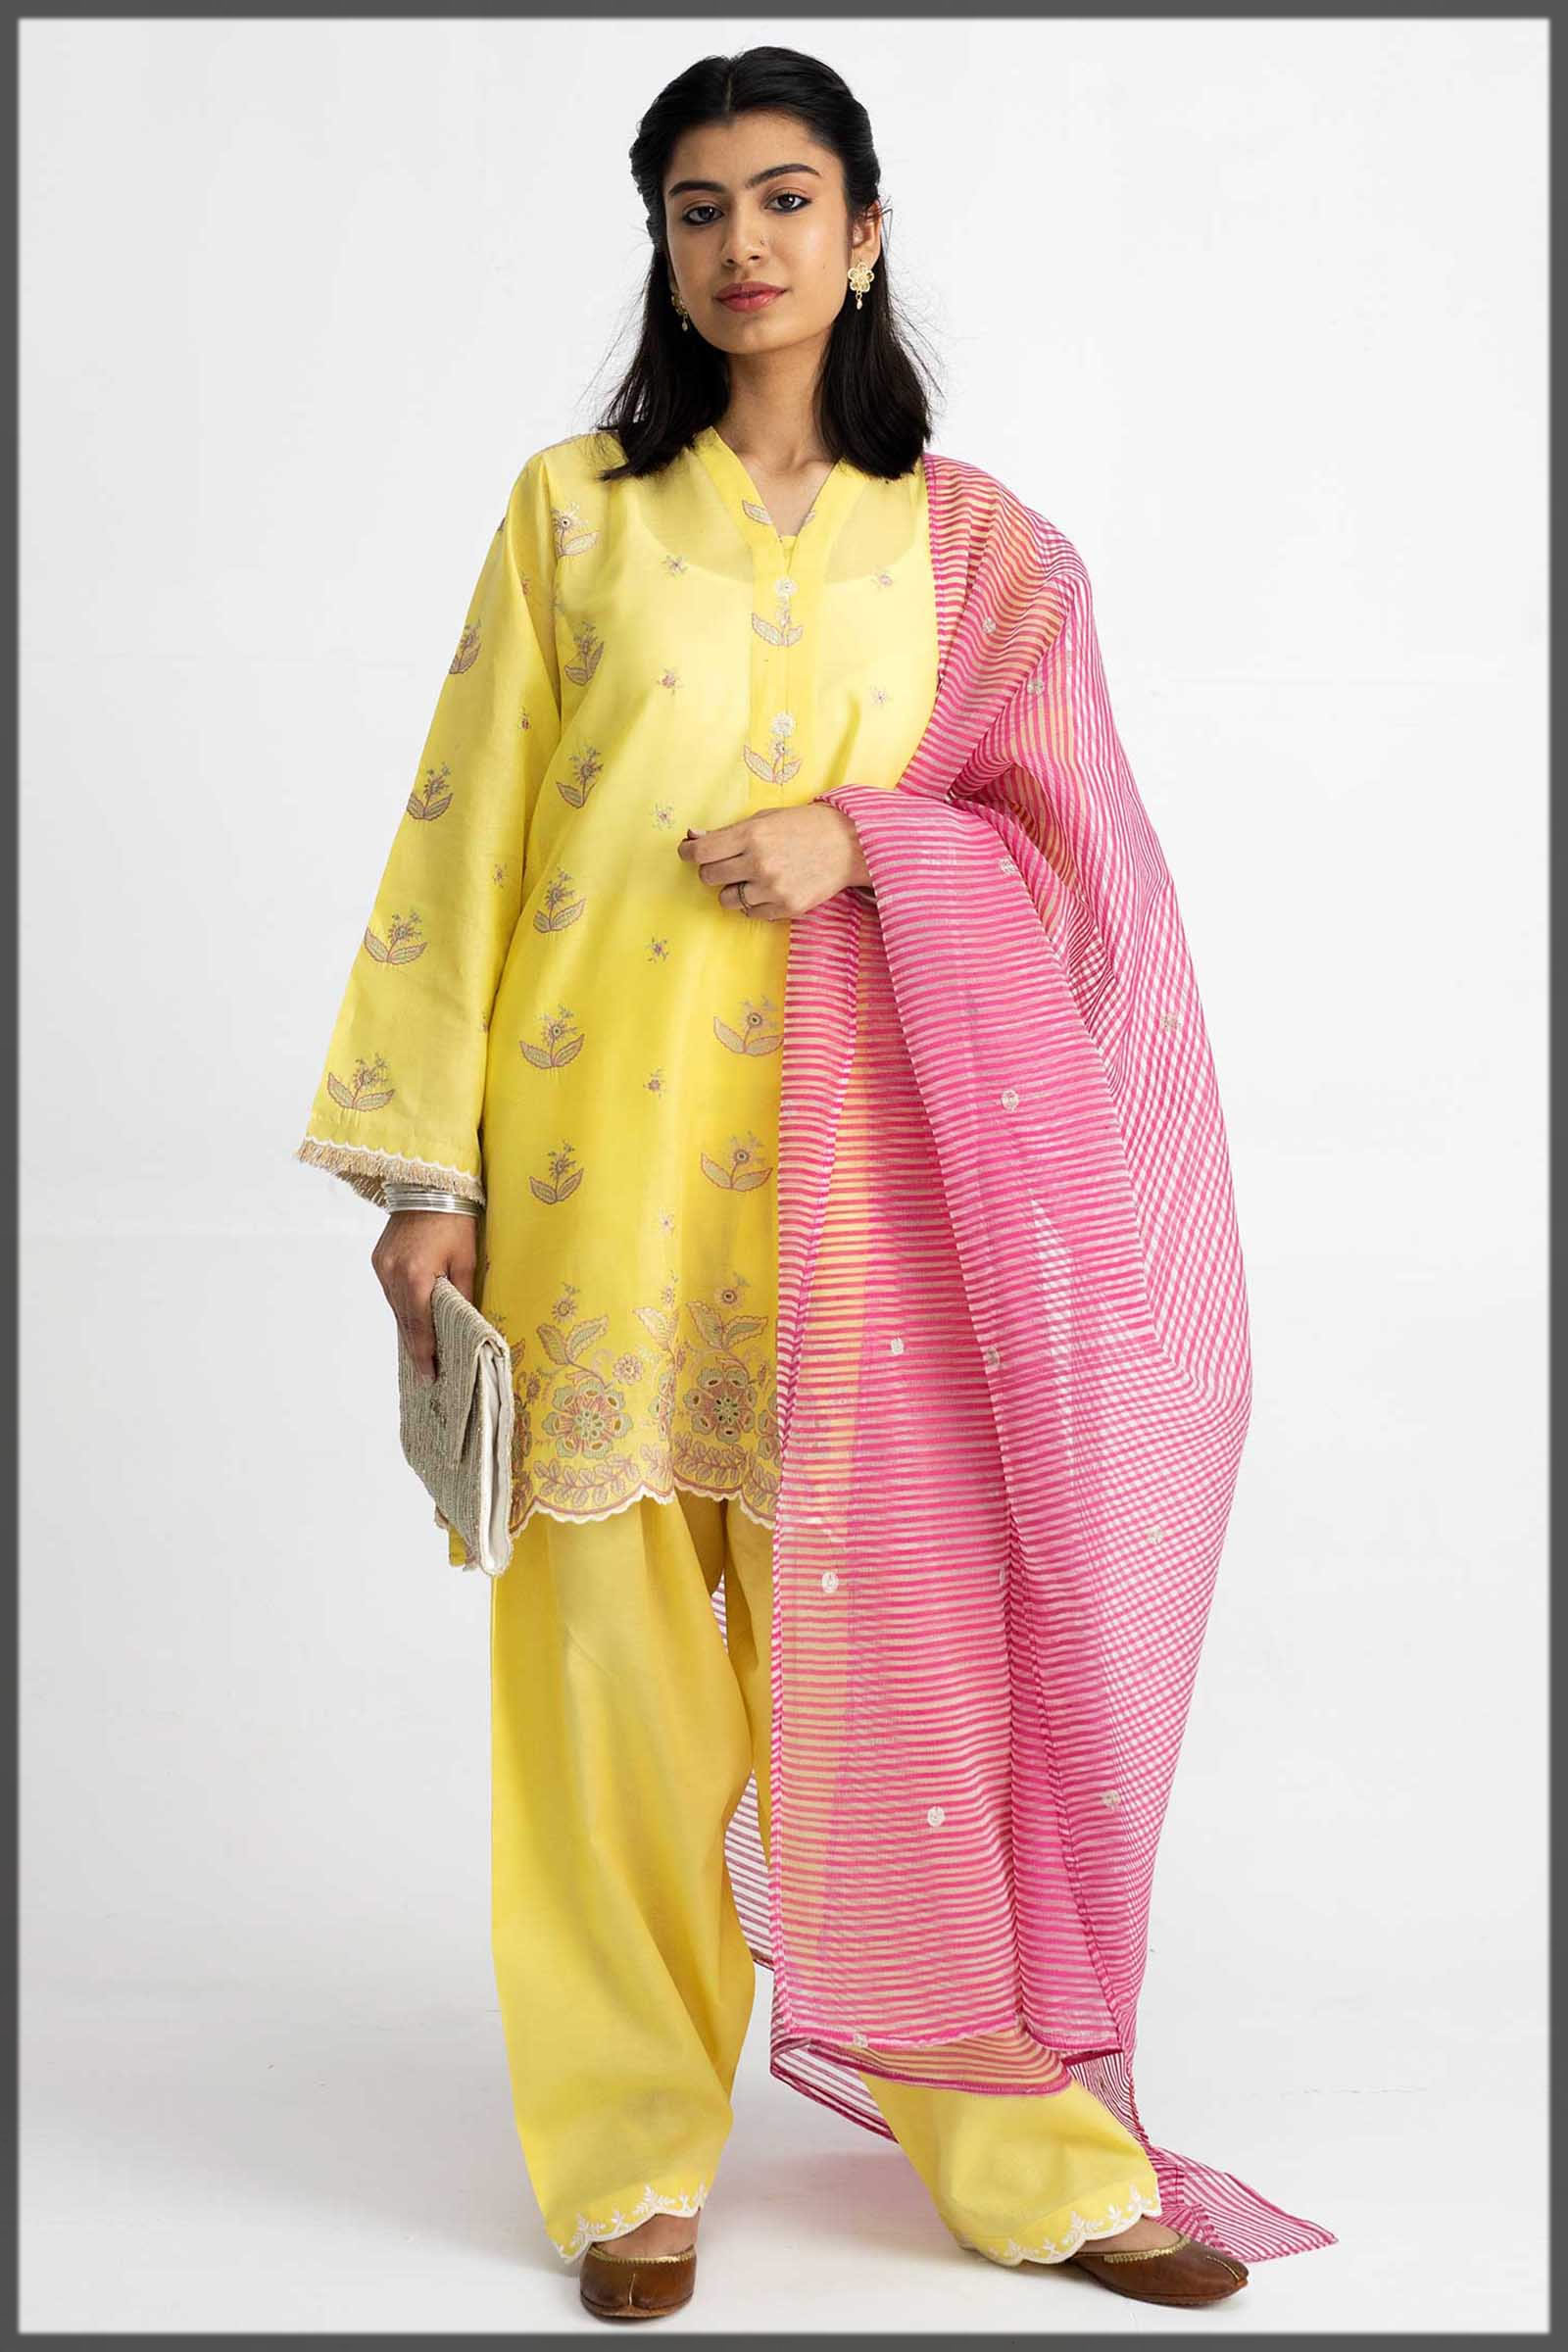 Custard Yellow Outfit for Eid